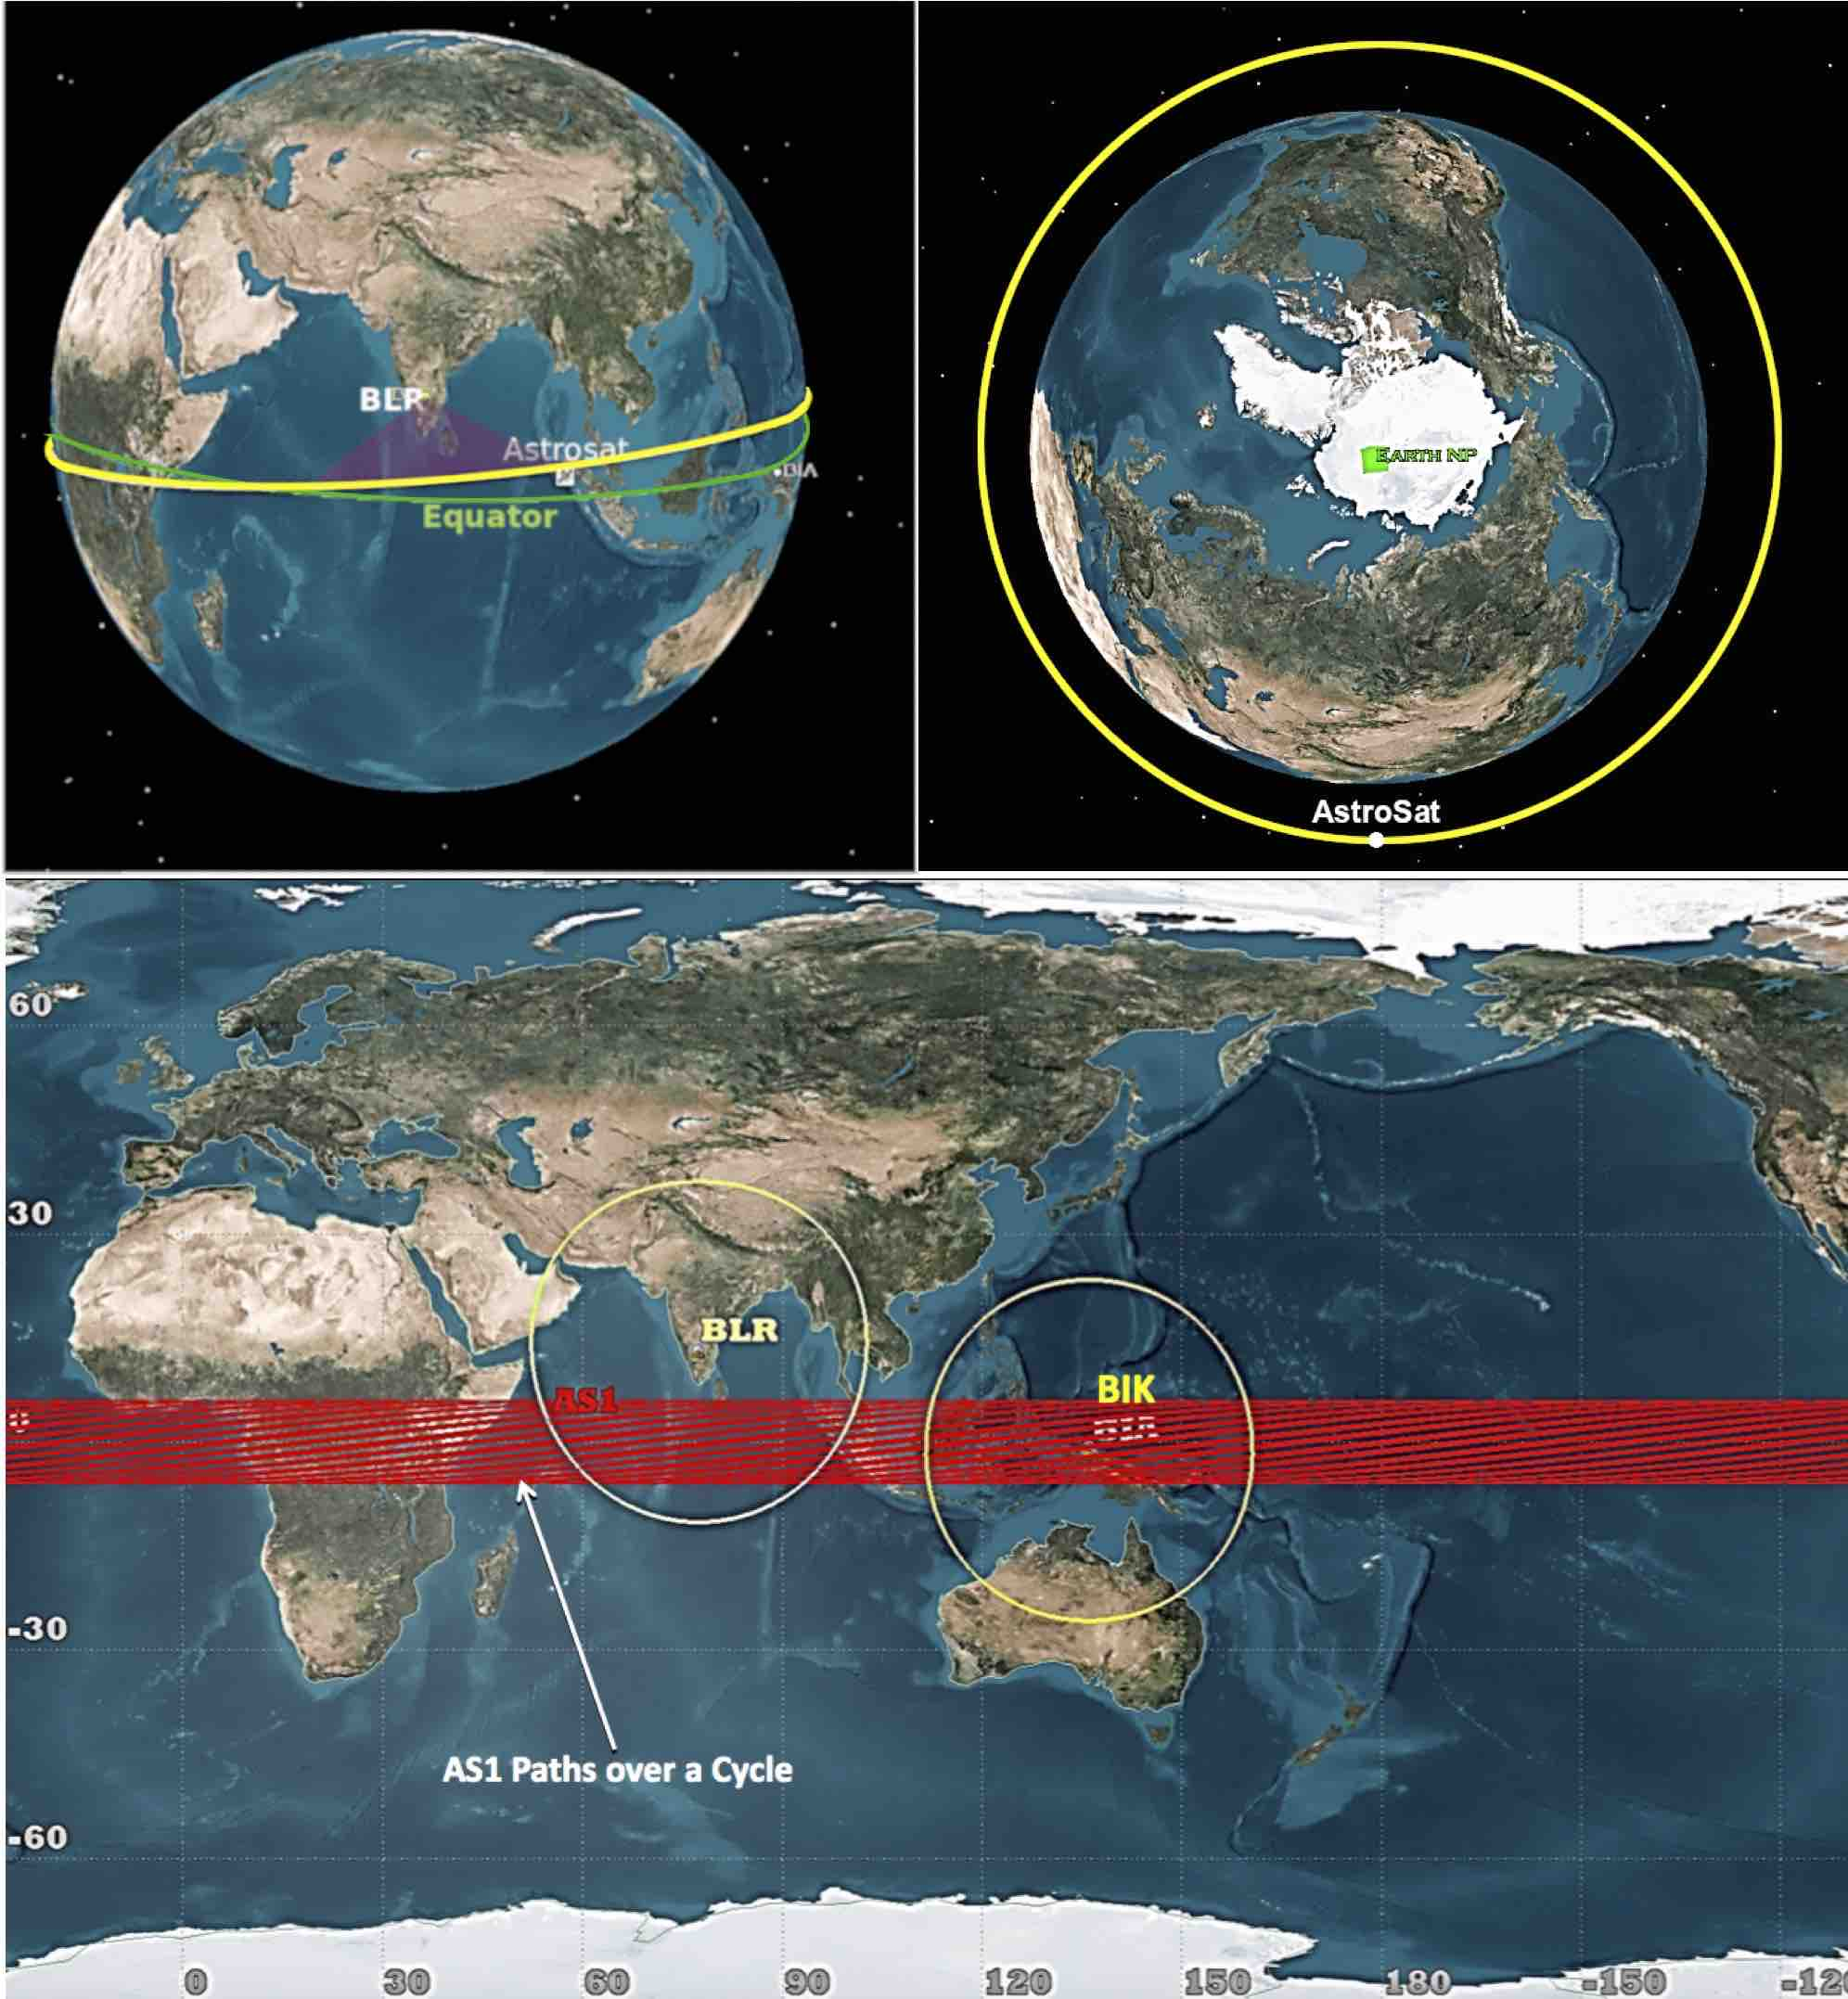 The 97 minute orbit of AstroSat around the Earth. The orbit is roughly equatorial (top right), inclined at around 6 degrees to it (top left). This results in each orbit being slightly displaced from the previous one (bottom). Pic Credits: Leo Jackson John, Operation Director, AstroSat, ISTRAC, ISRO